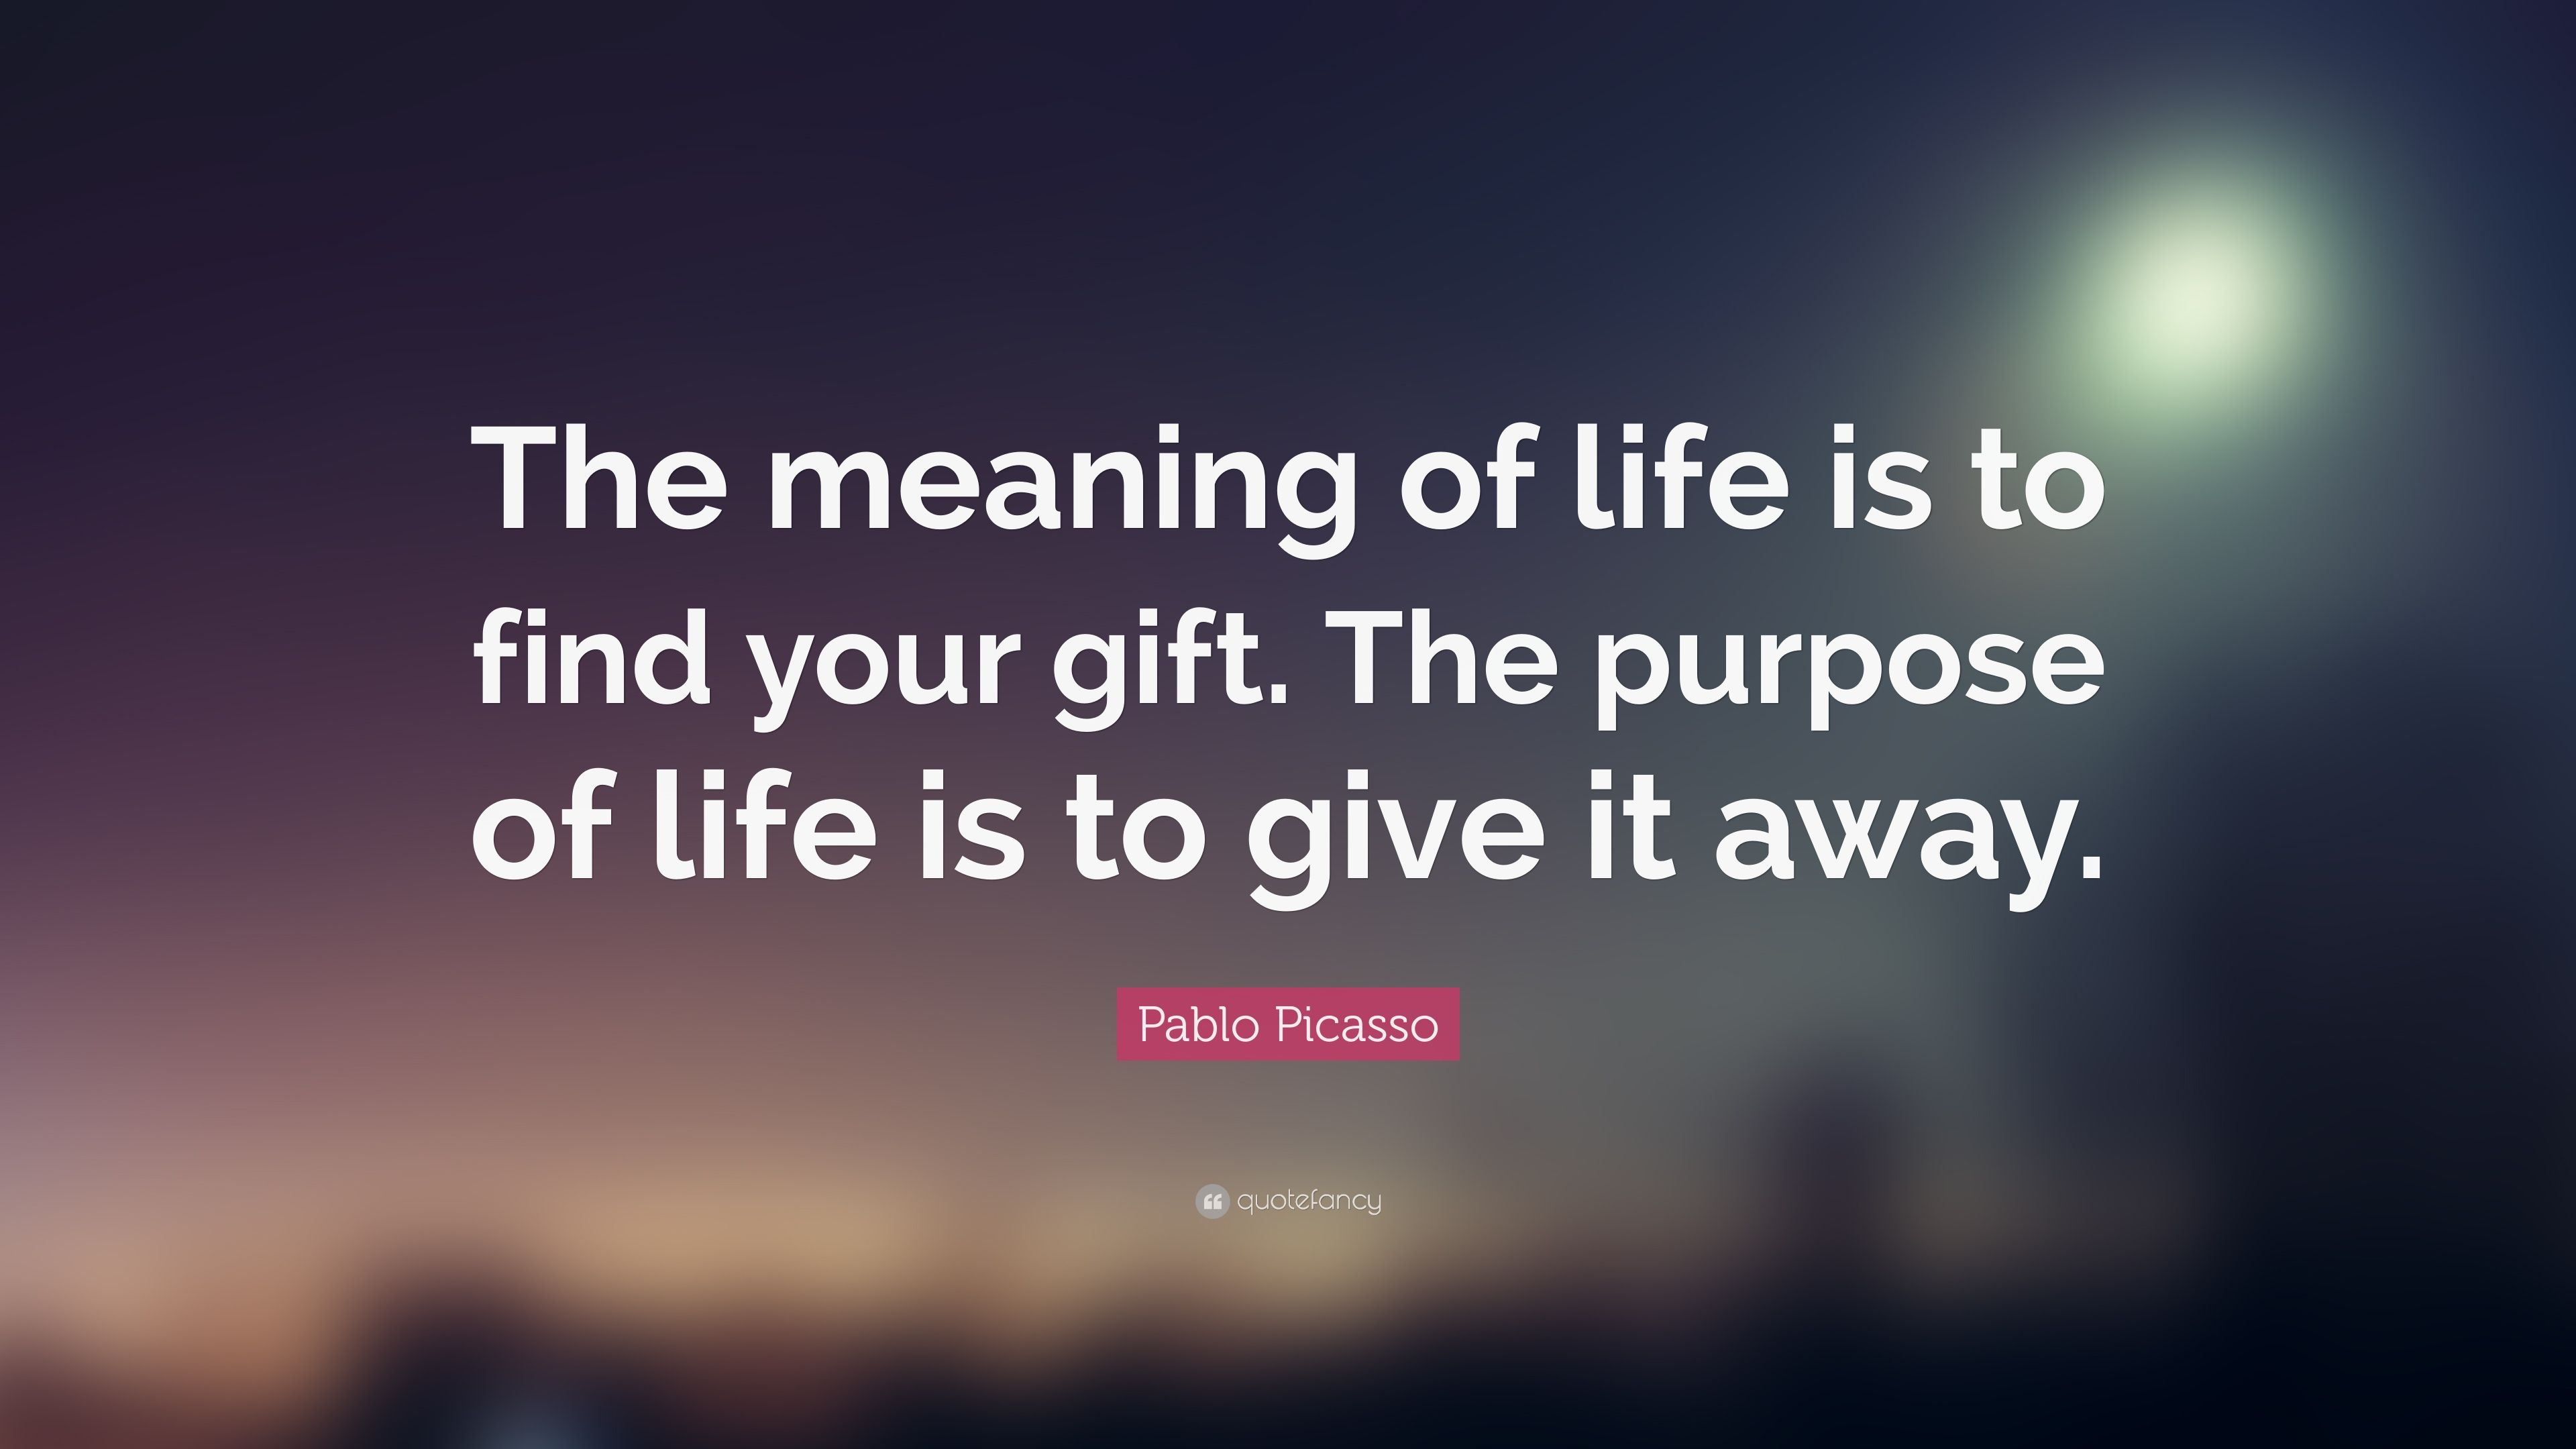 Pablo Picasso Quote The Meaning Of Life Is To Find Your Gift